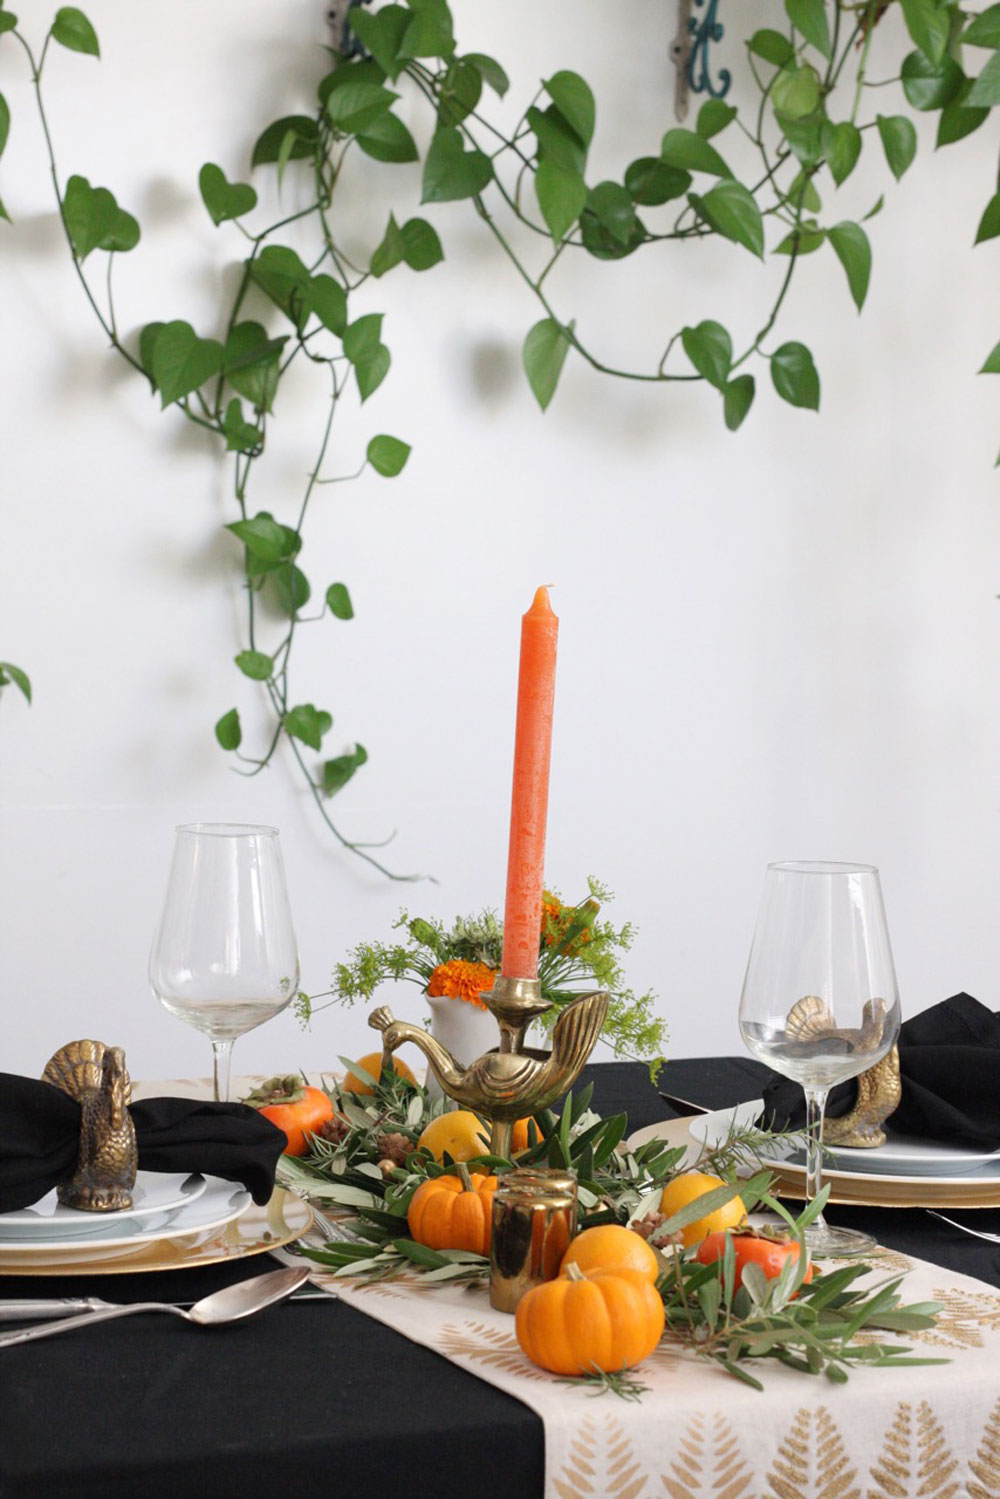 jestcafe.com-thanksgiving-table-setting7